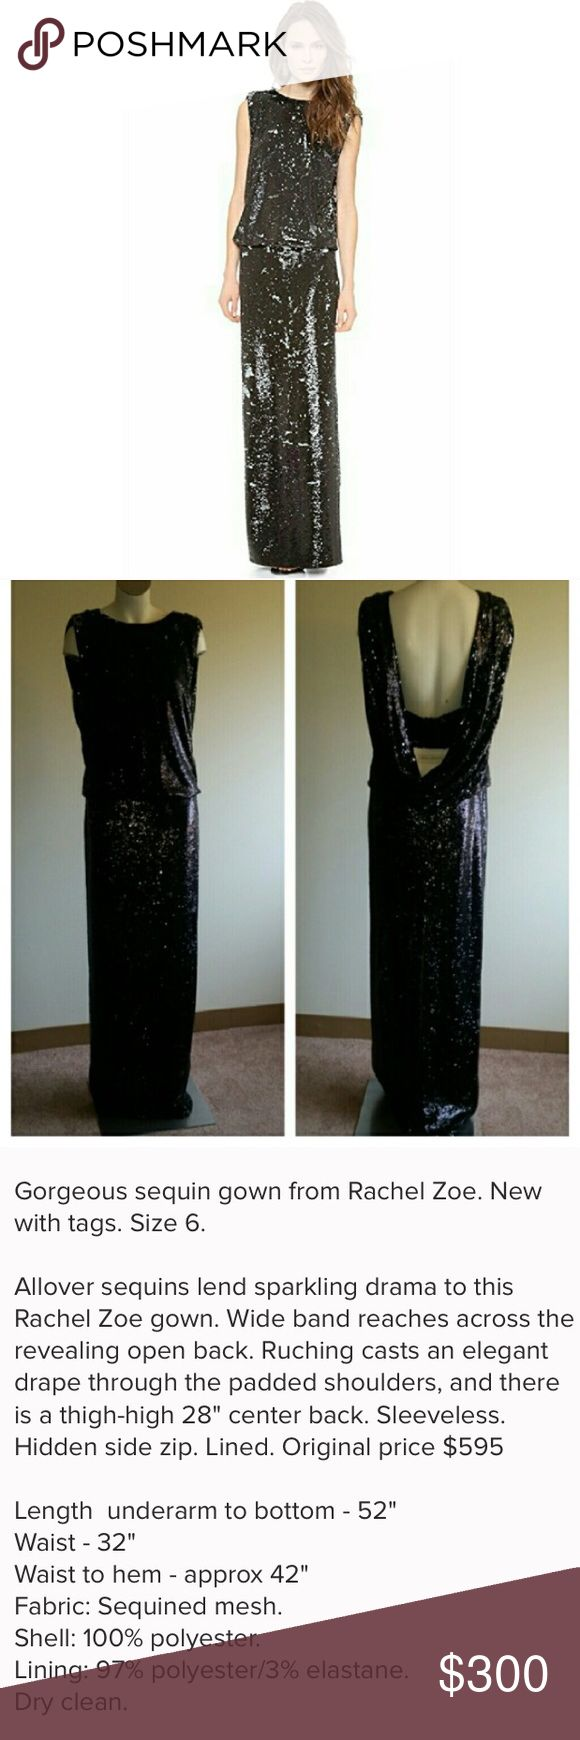 Rachel Zoe Sequin evening gown Gorgeous amazing dress just a tad too large for me! Ladies this is a perfect dress for that special evening! Rachel Zoe Dresses